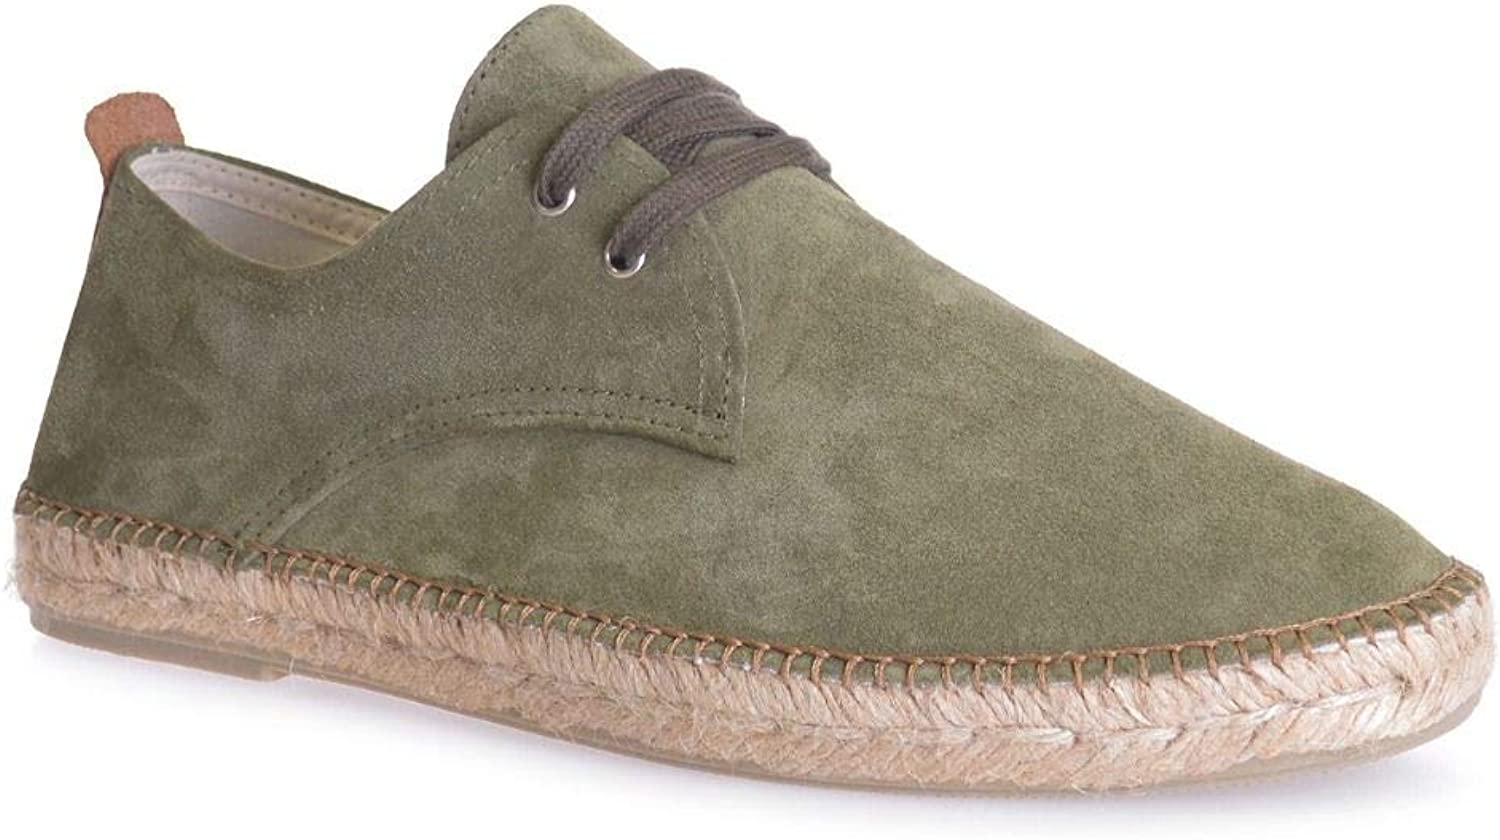 Toni Pons Dover Espadrille for Men in Suede.